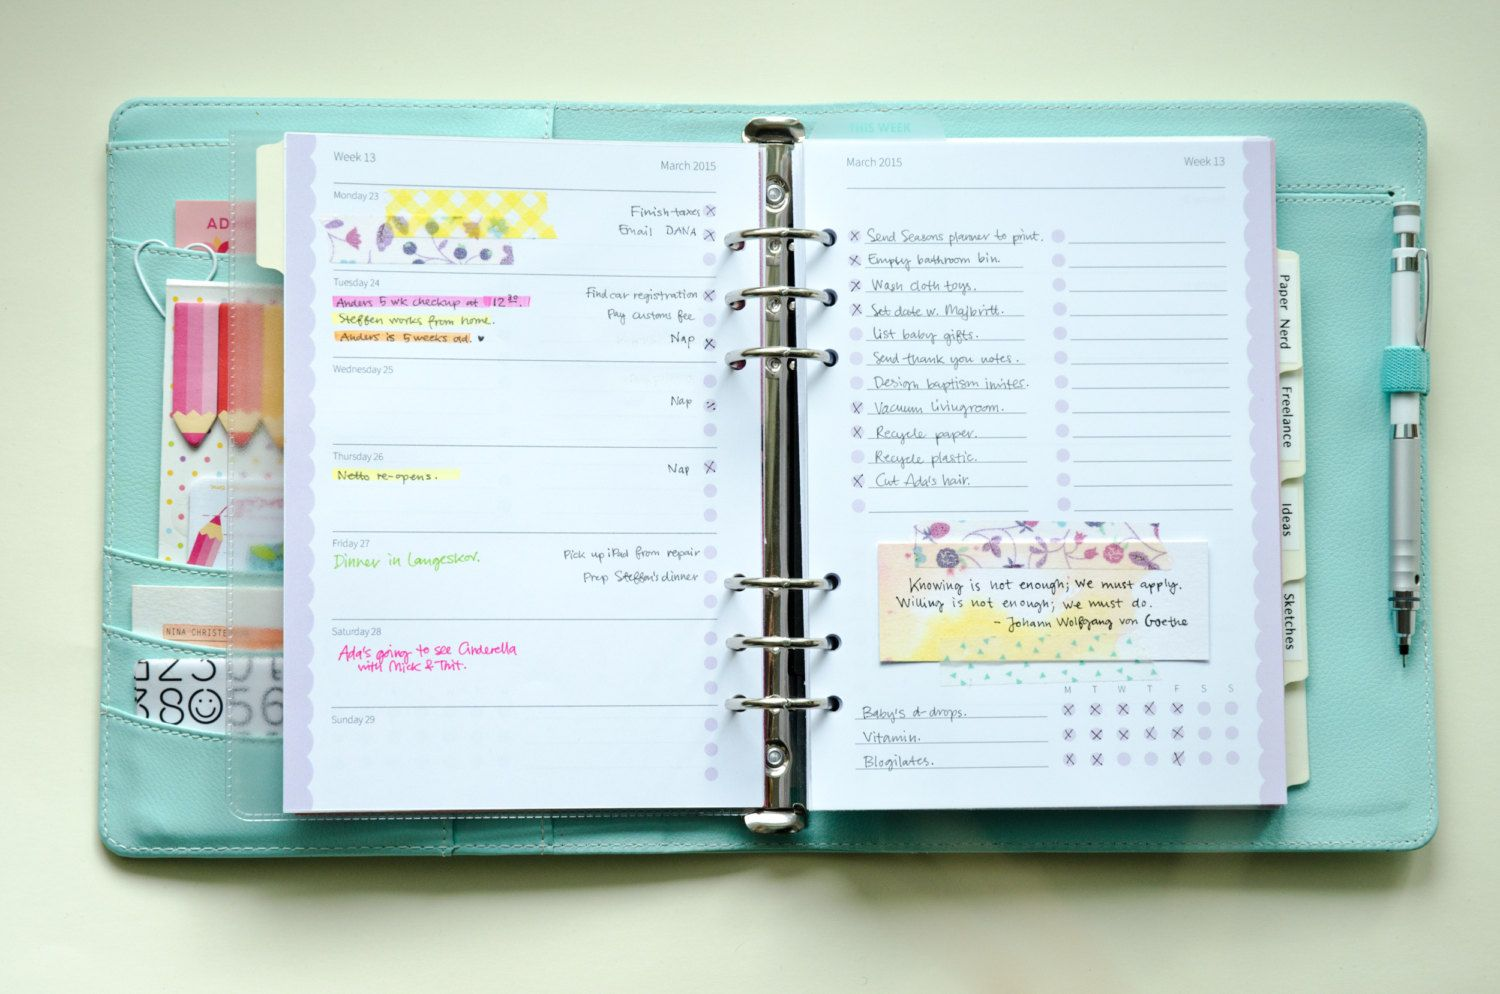 Digital · Pastel Day Planner 2015 · A5 Filofax Inserts · Printable Week on Two Pages by imapapernerd on Etsy